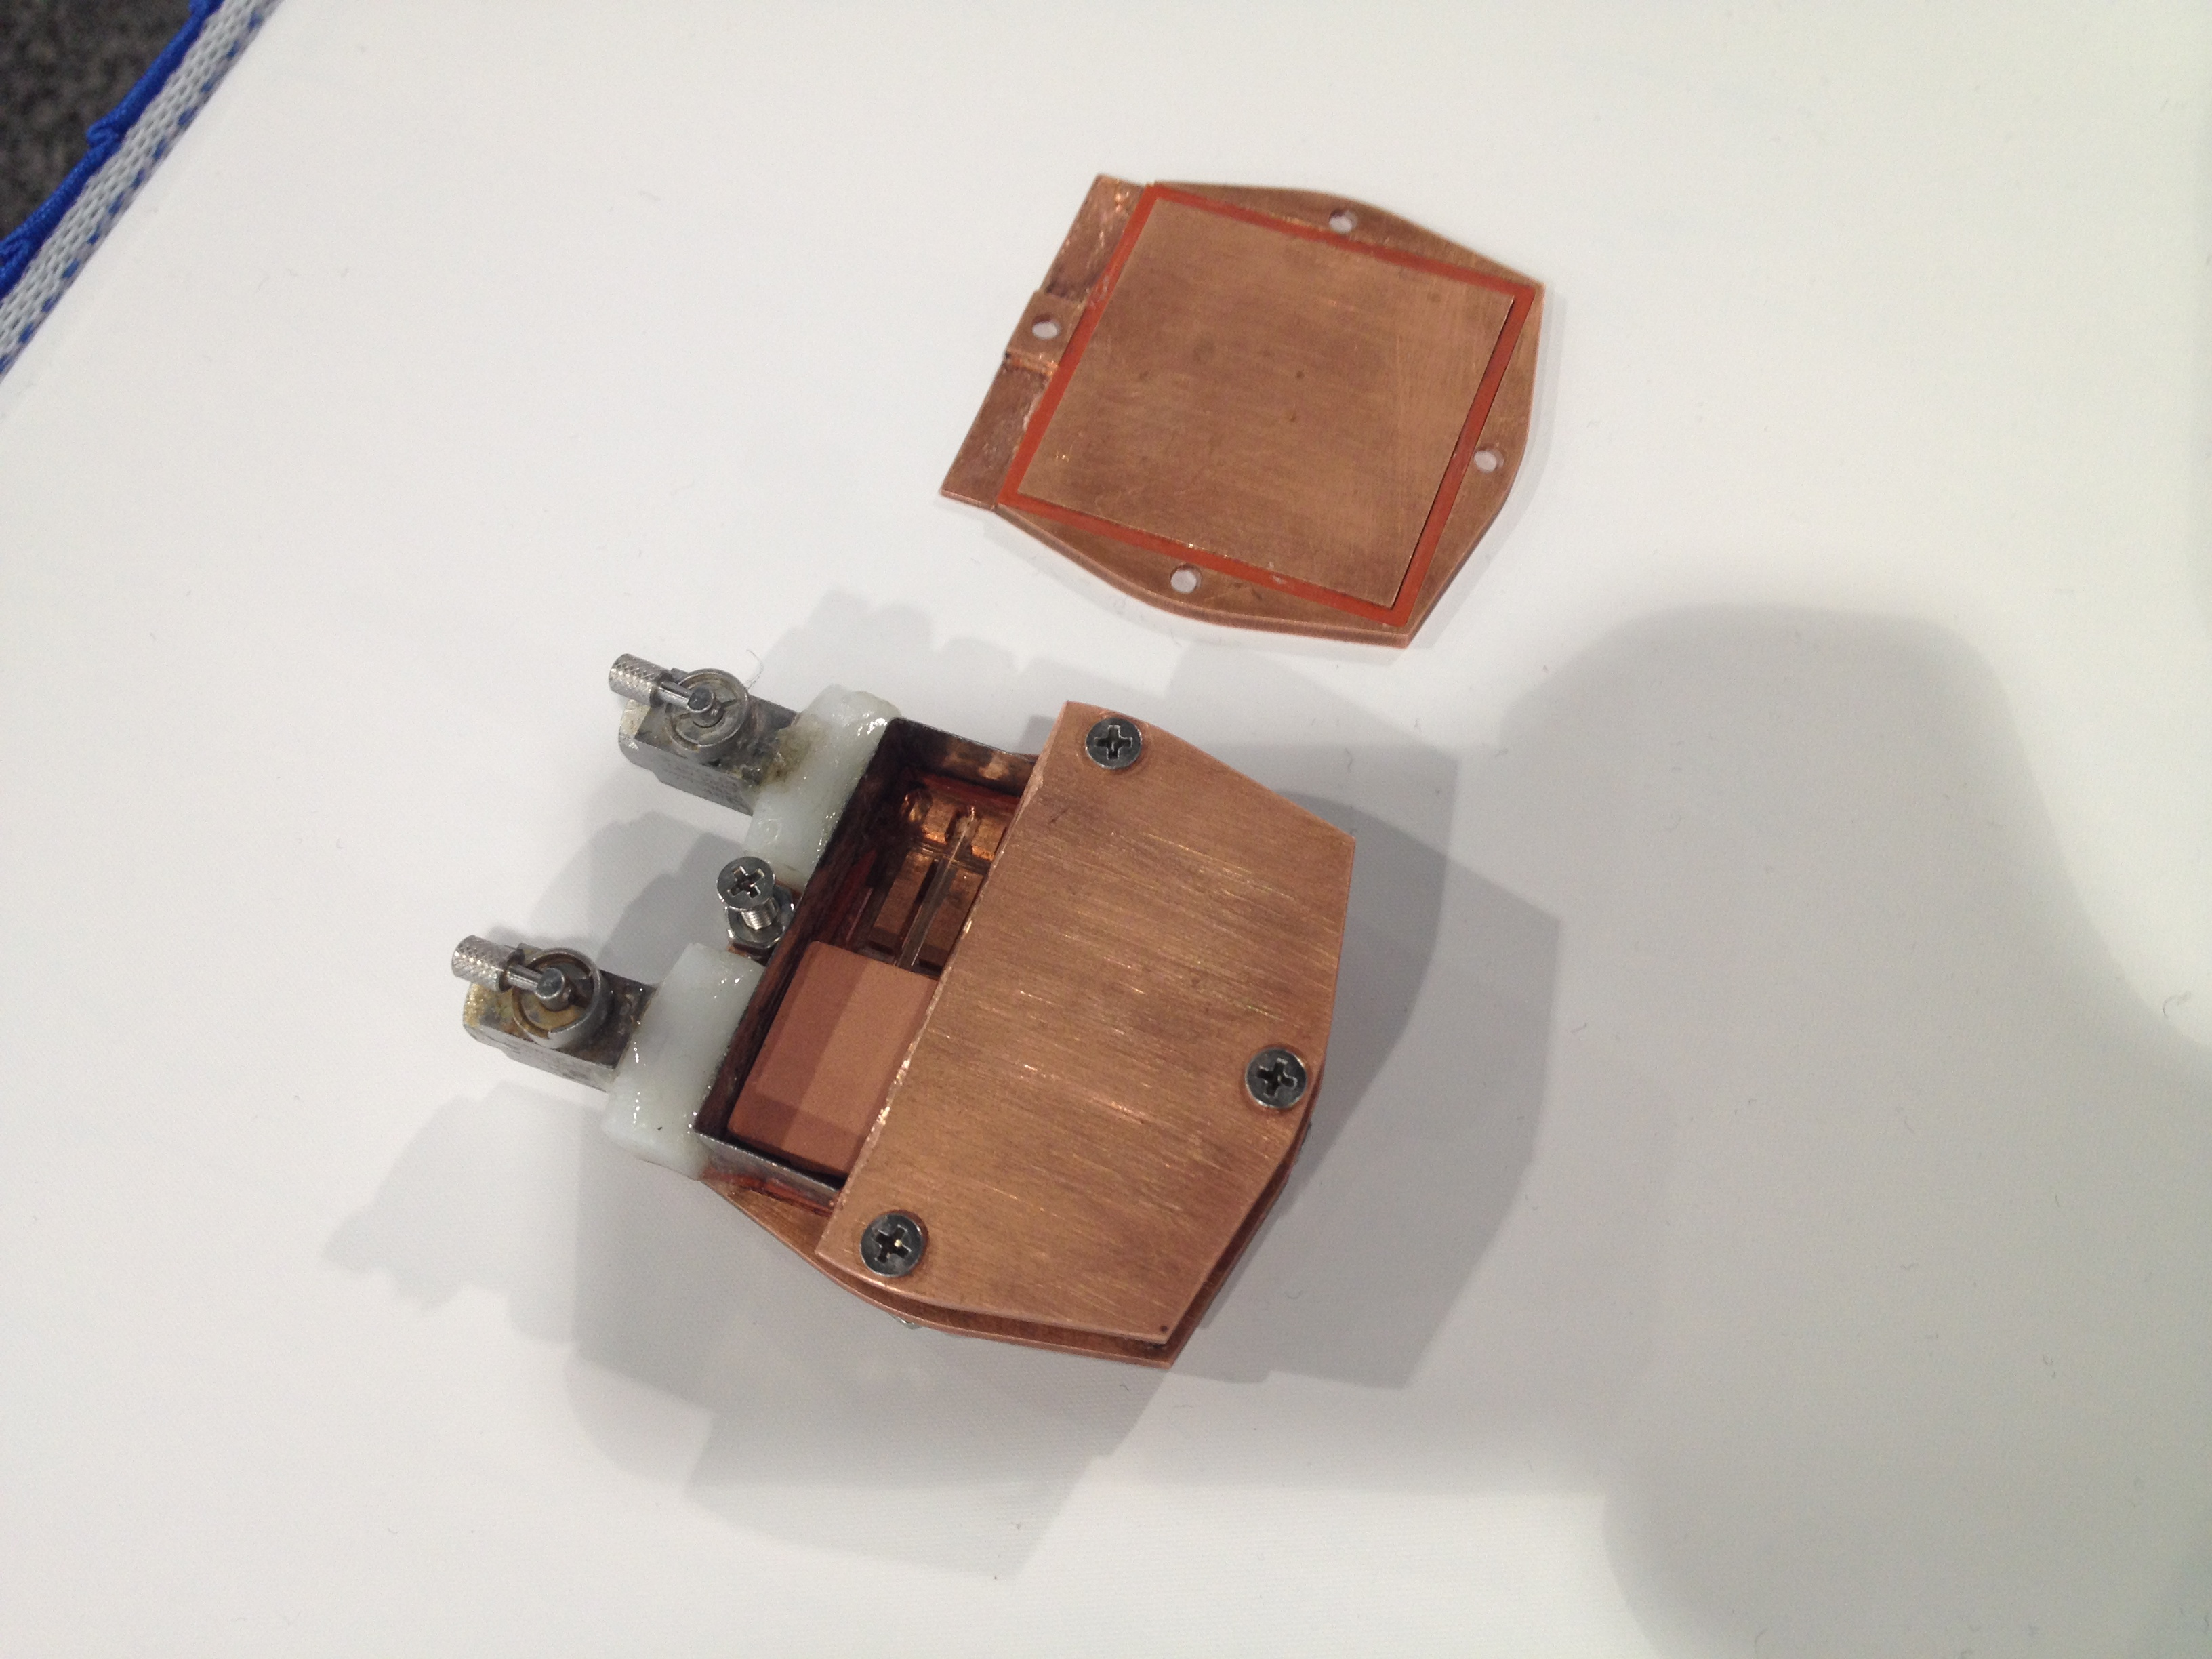 MIT researchers prototypes of thermal battery cells for an electric car.